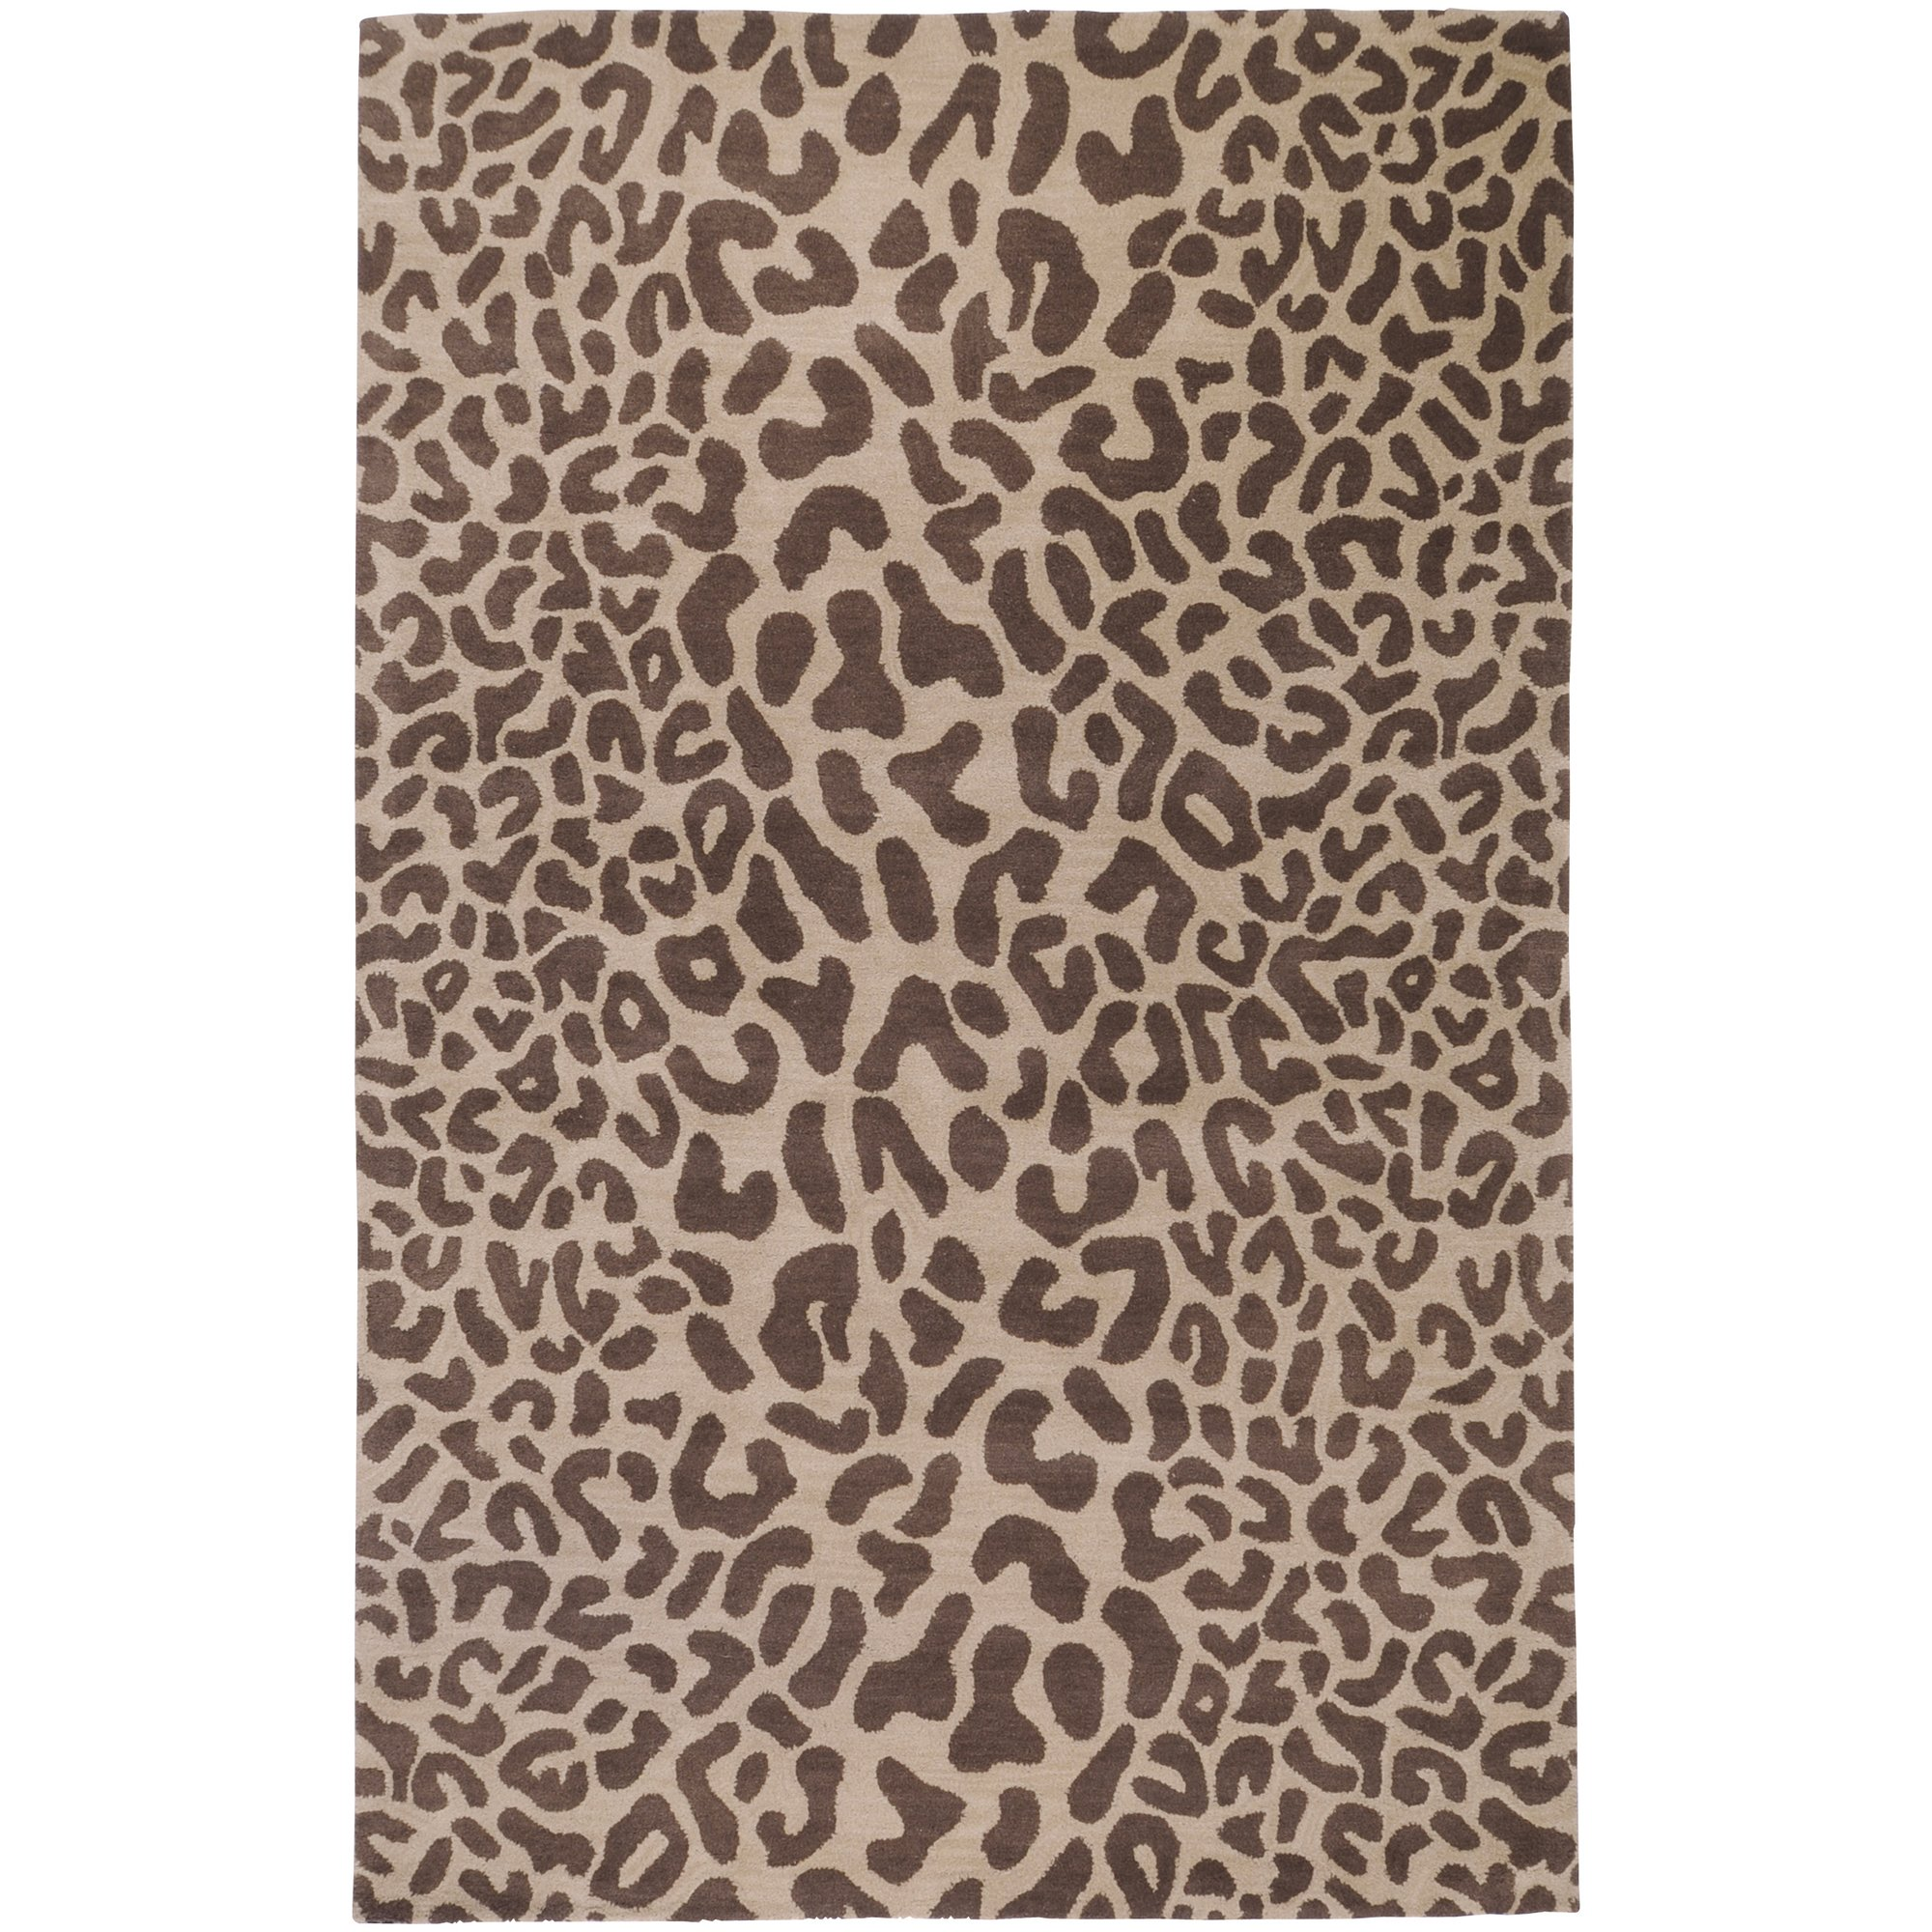 Surya Athena ATH-5000 Contemporary Hand Tufted 100% Wool Driftwood Brown 2'6'' x 8' Animal Runner by Surya (Image #1)